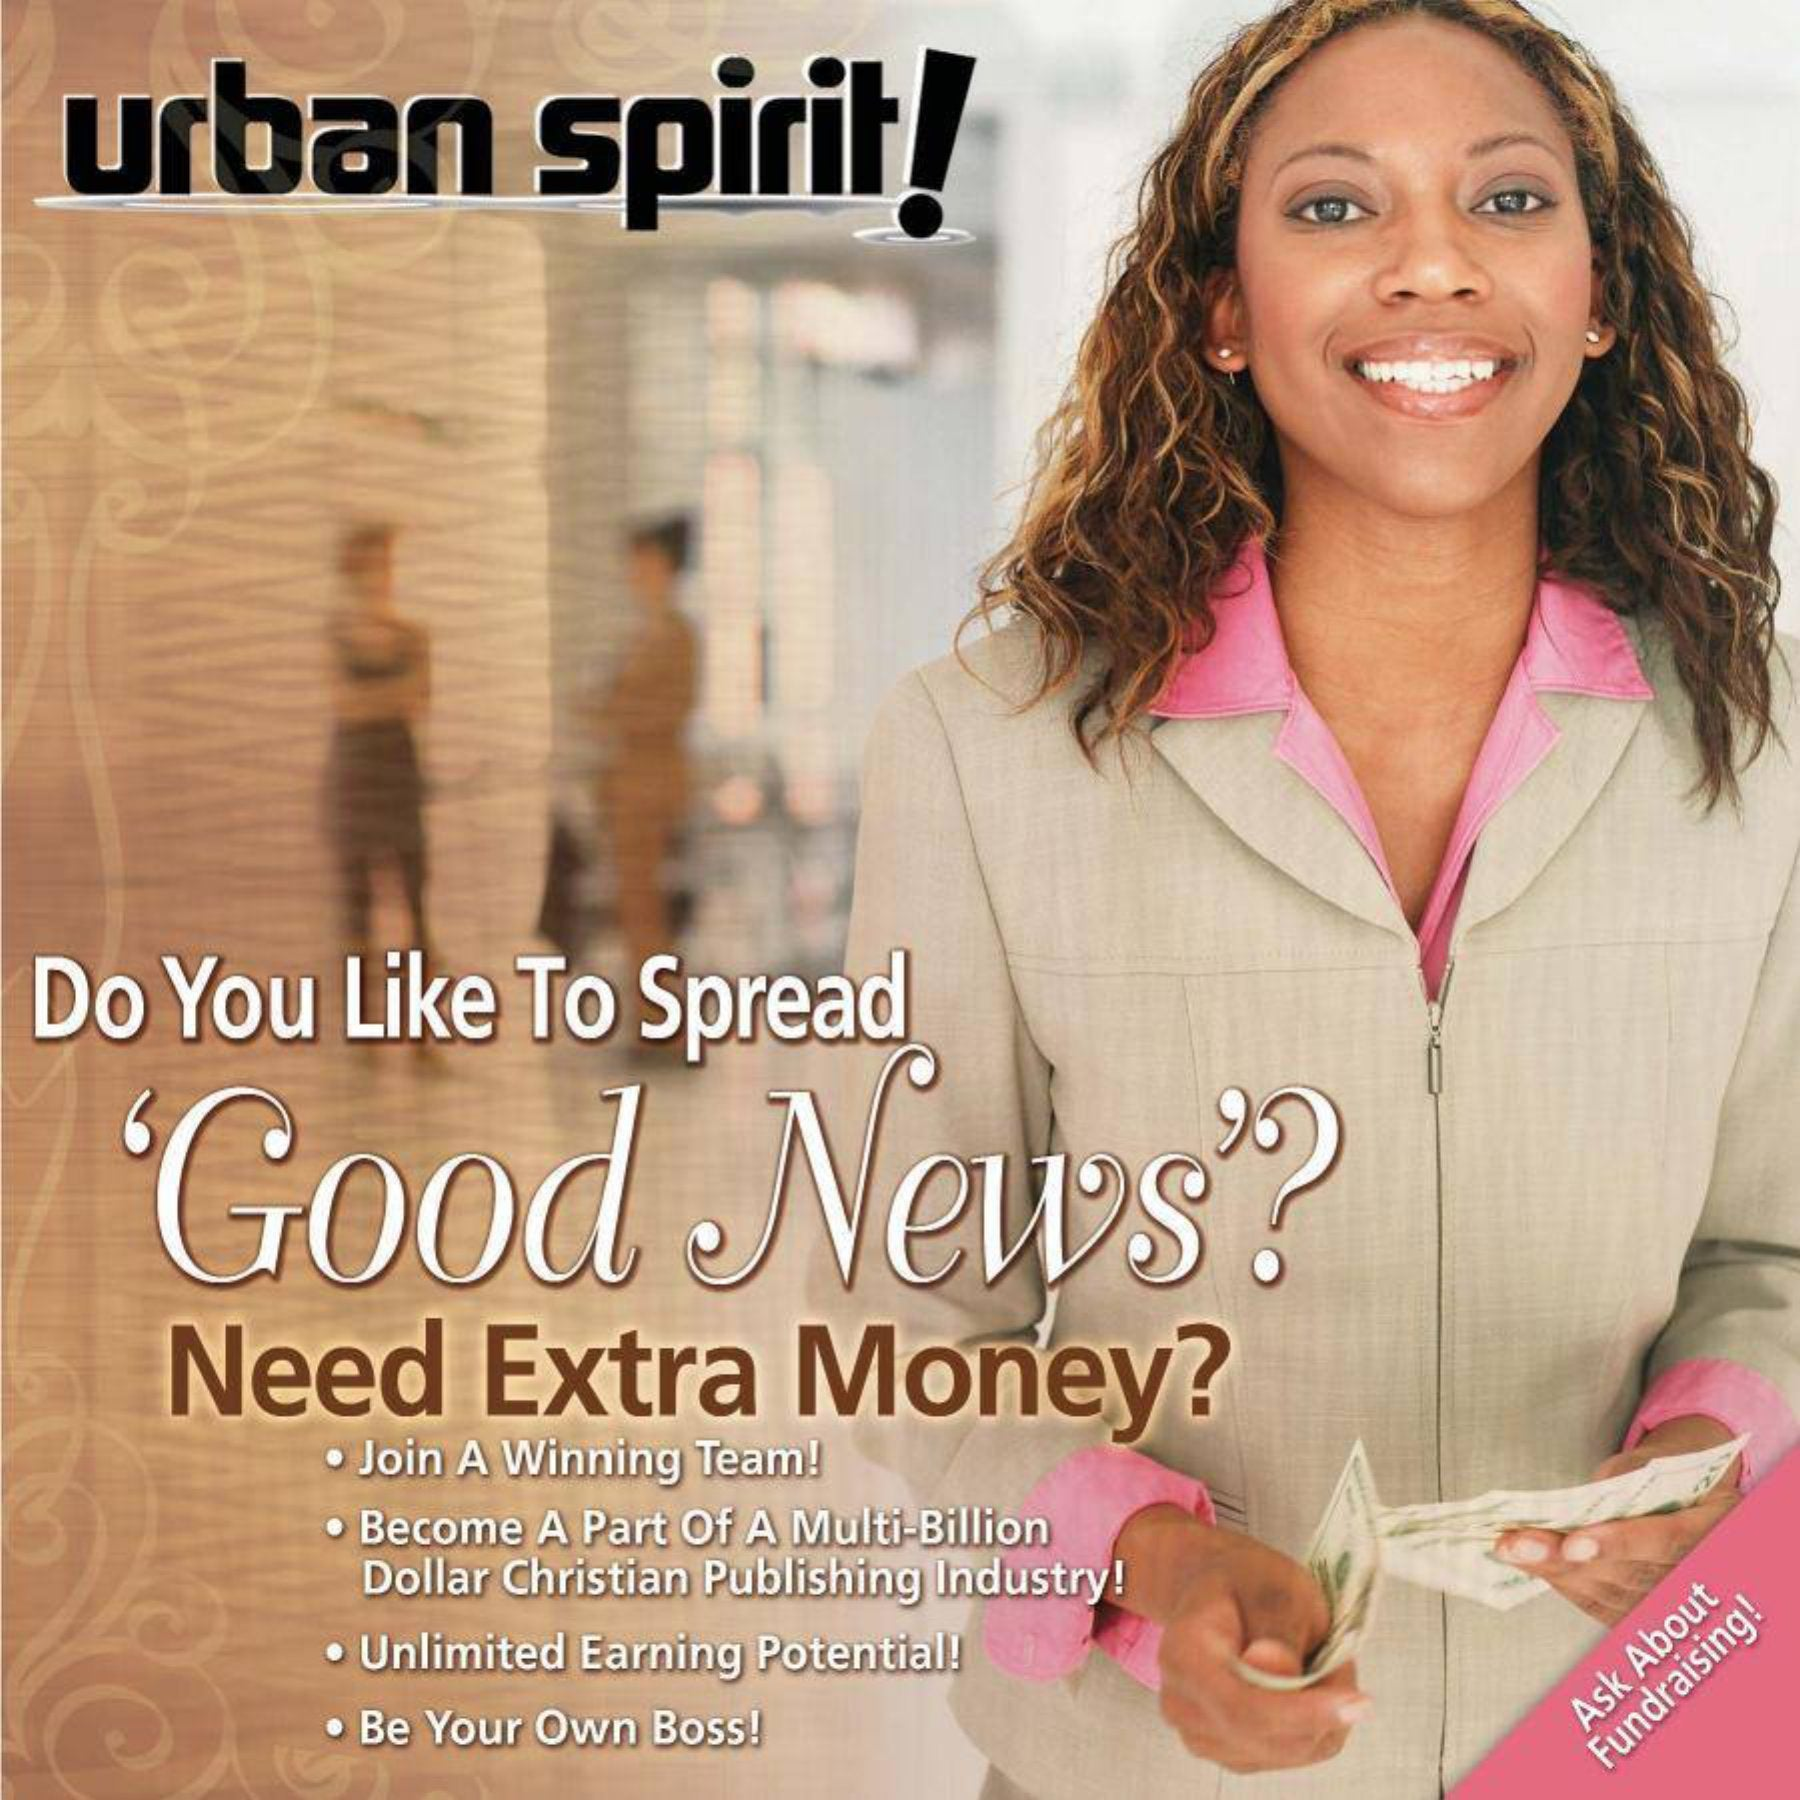 Urban Spirit! Independent Distributor Starter Kit